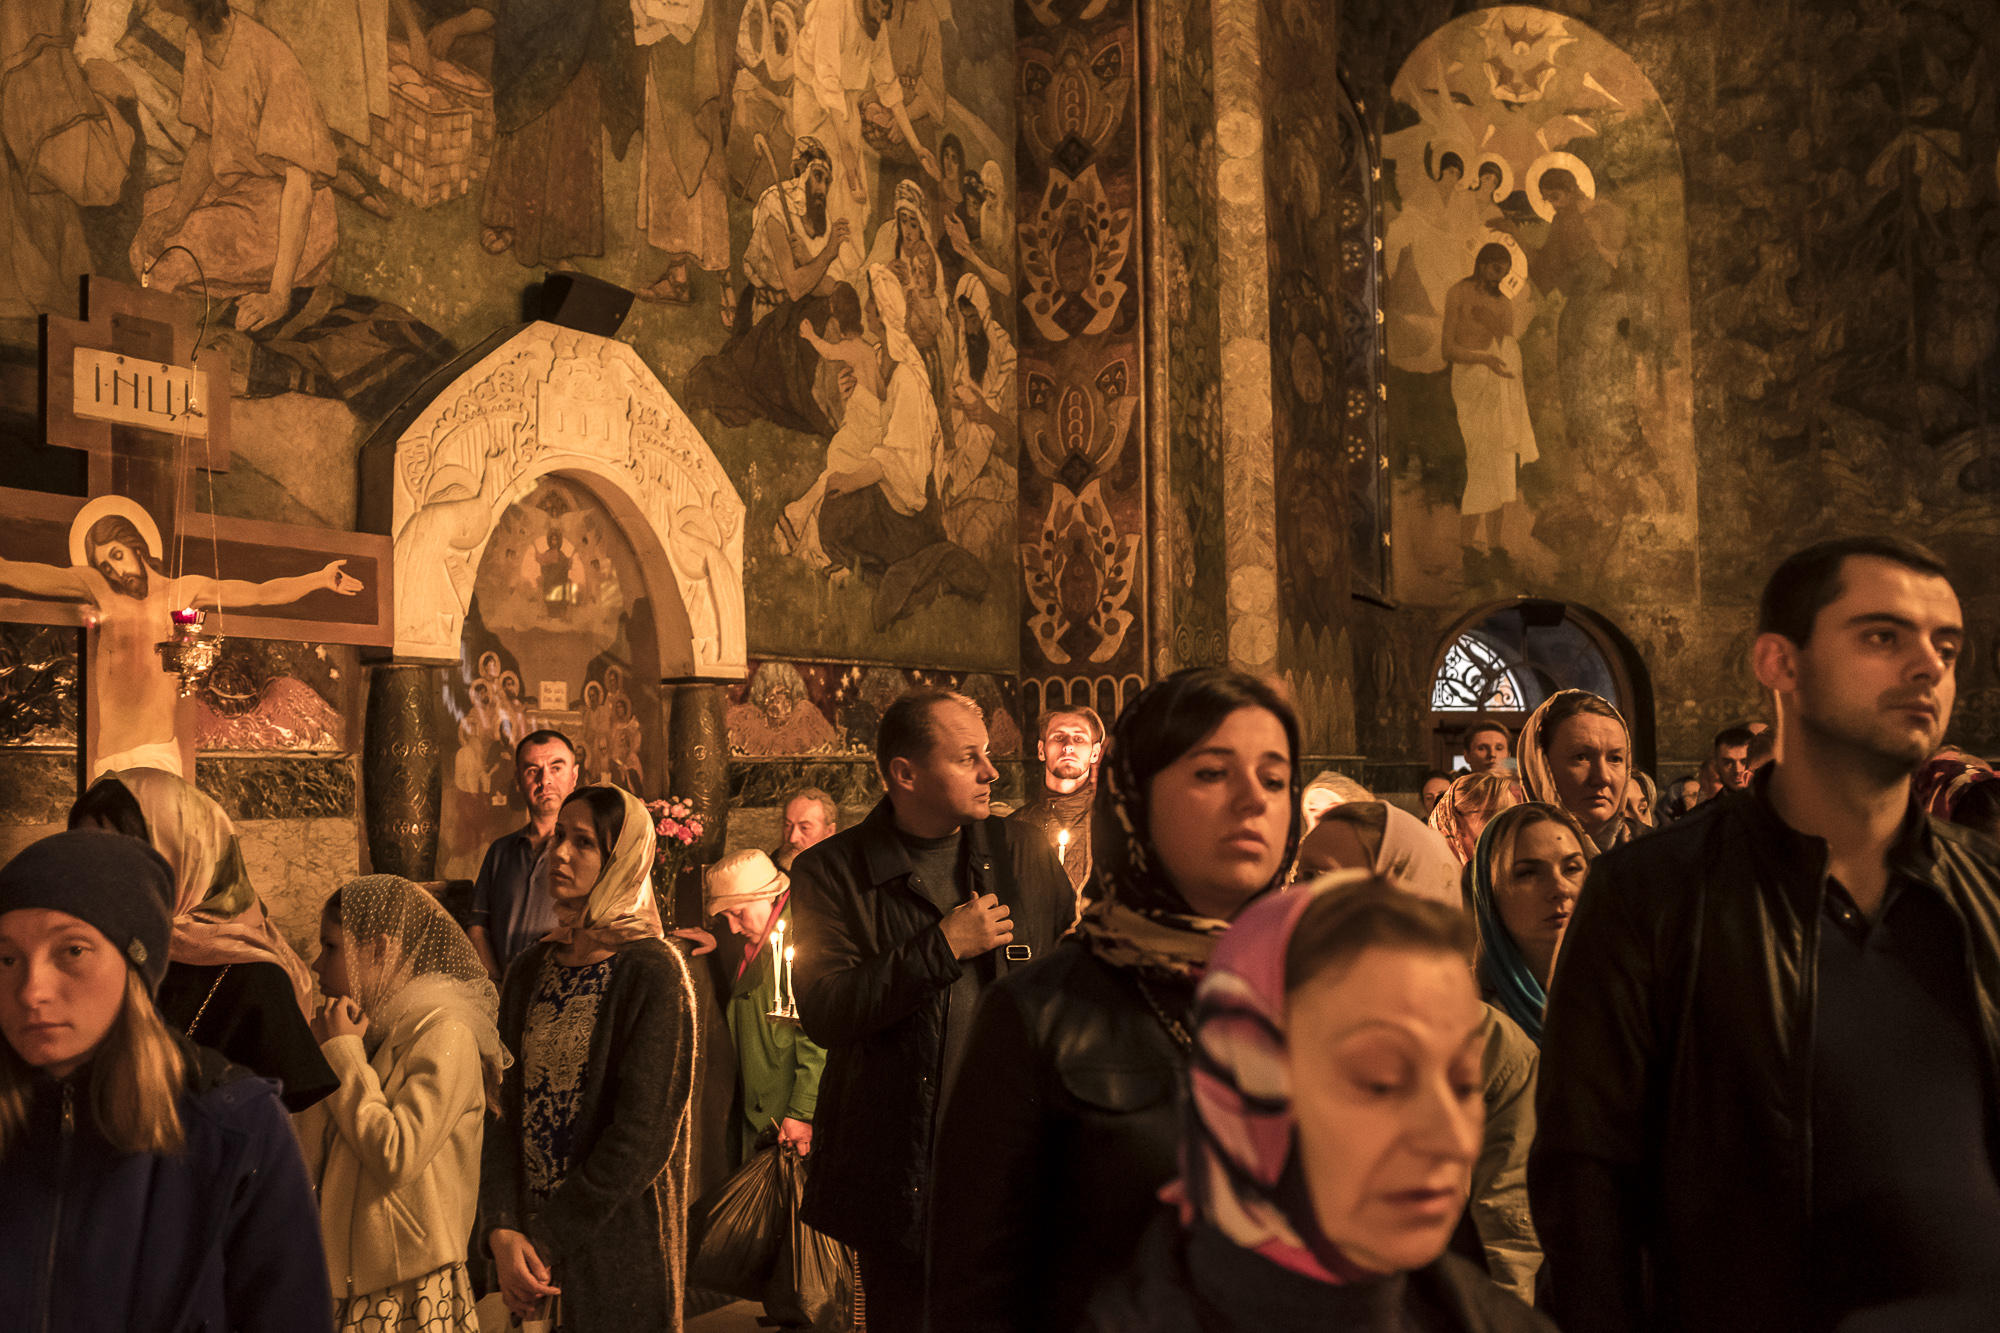 Worshipers at a Bishop's Mass at the Refectory Church of Sts. Anthony and Theodosius at the Kyiv-Pechersk Lavra on Saturday, October 6, 2018 in Kyiv, Ukraine.